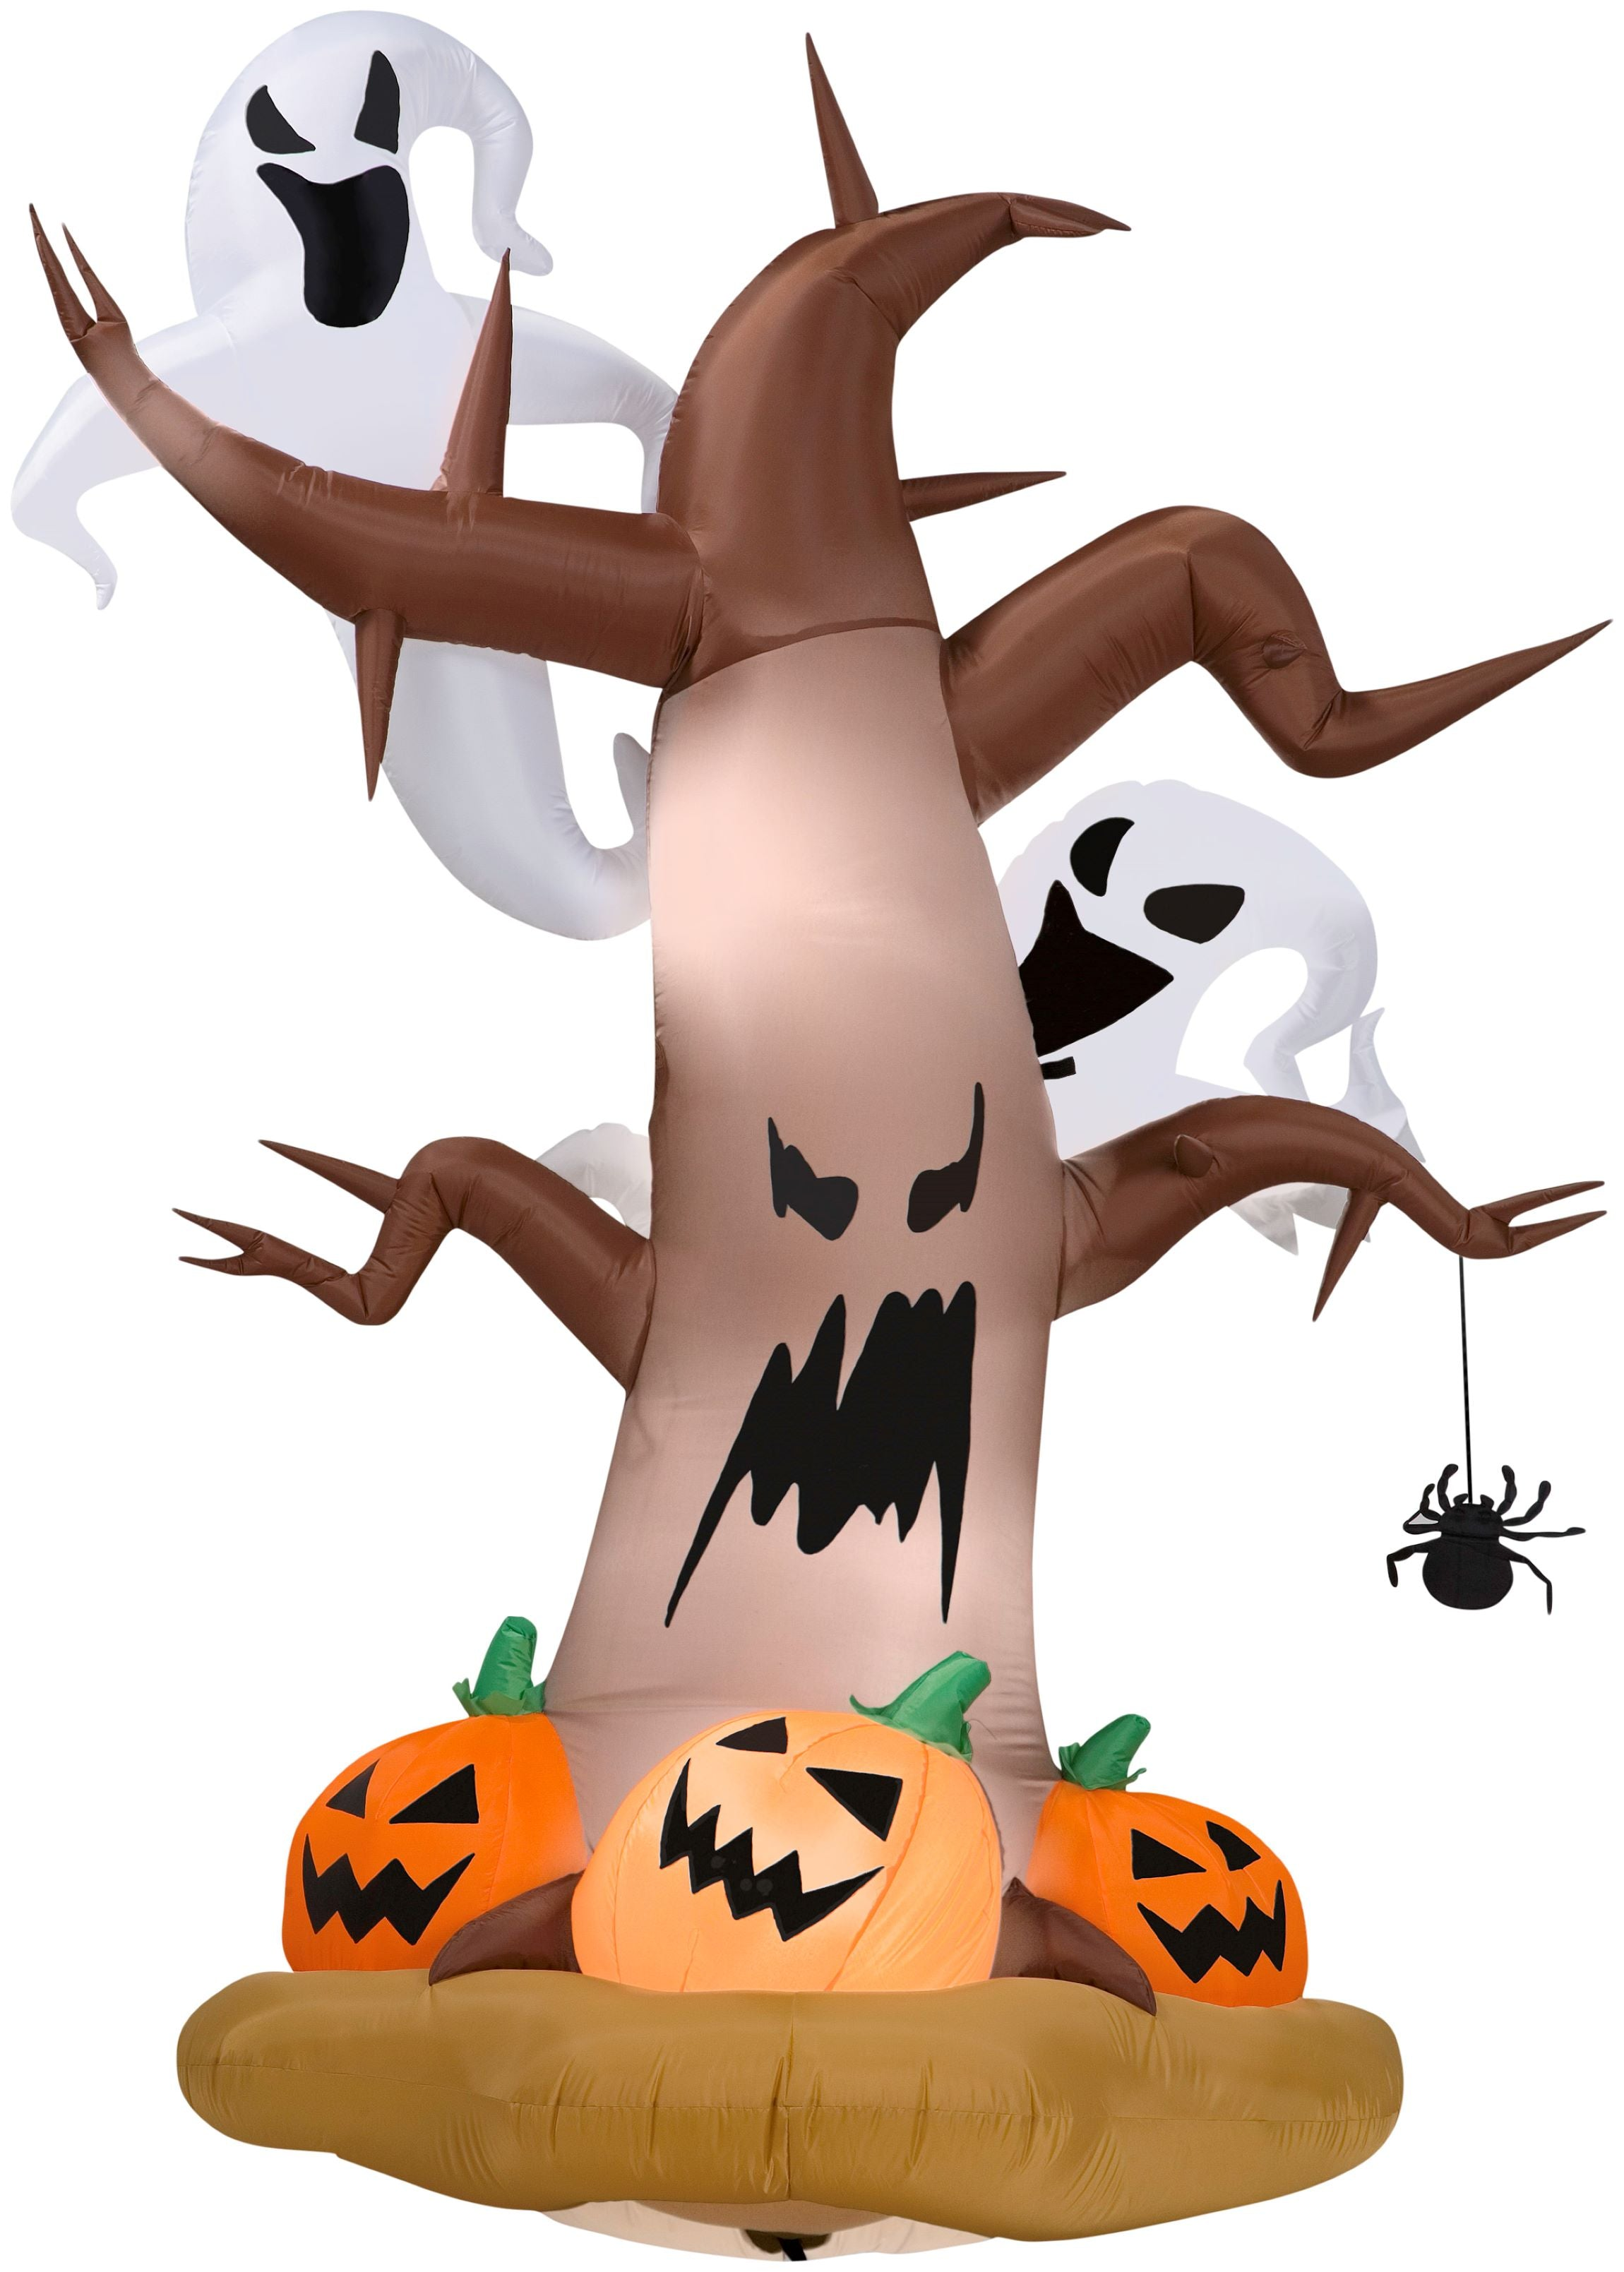 8' Airblown Dead Tree w/ Ghosts and Pumpkins Halloween Inflatable